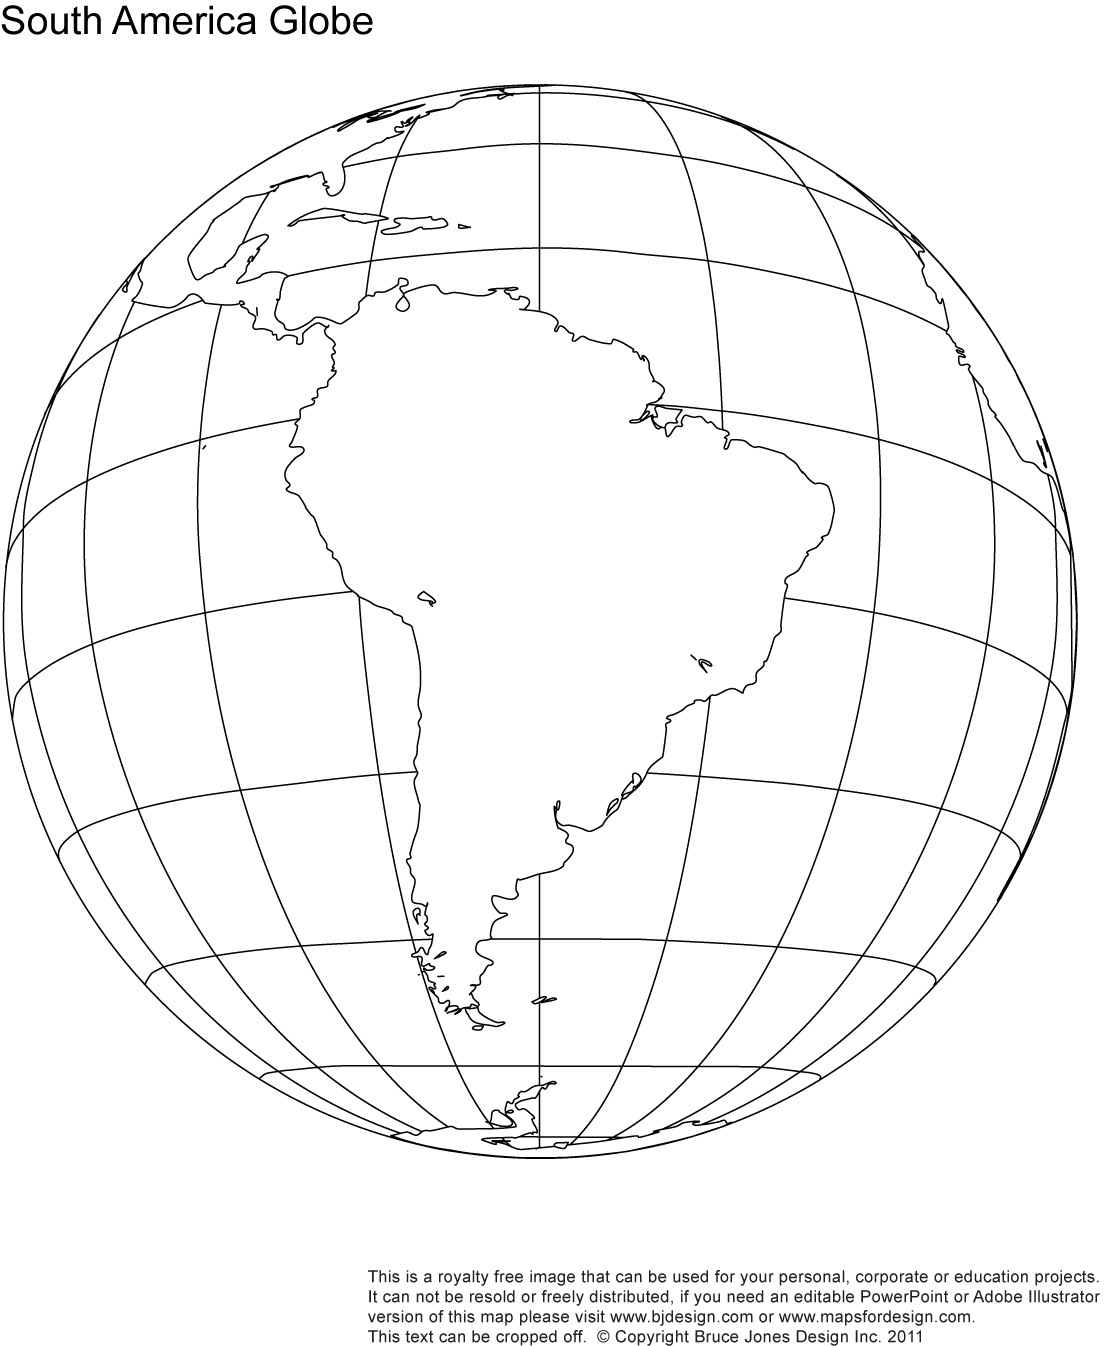 South America Globe map, printable, blank, outline, royalty free, jpg map